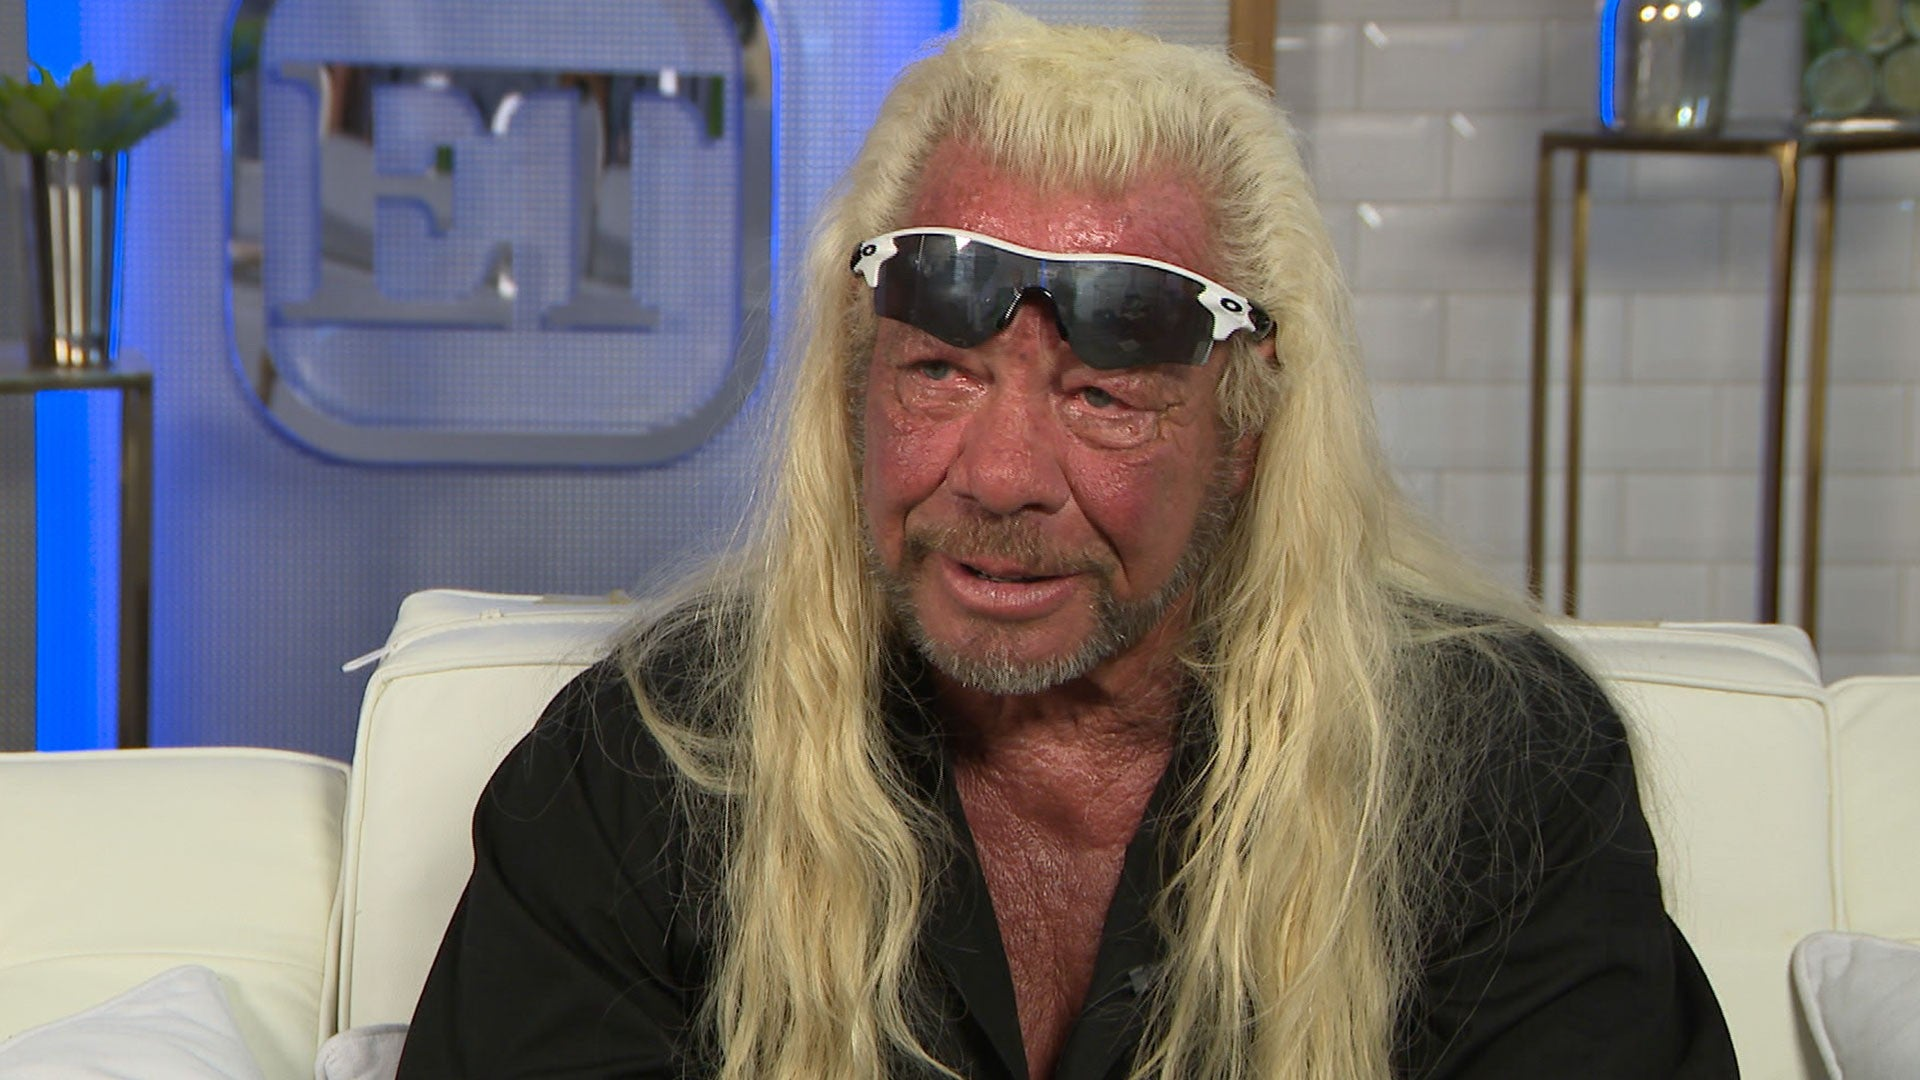 dog-the-bounty-hunter-says-gf-moon-angell-saved-his-life-he-was-going-to-commit-suicide-after-his-wife-beth-chapmans-passing